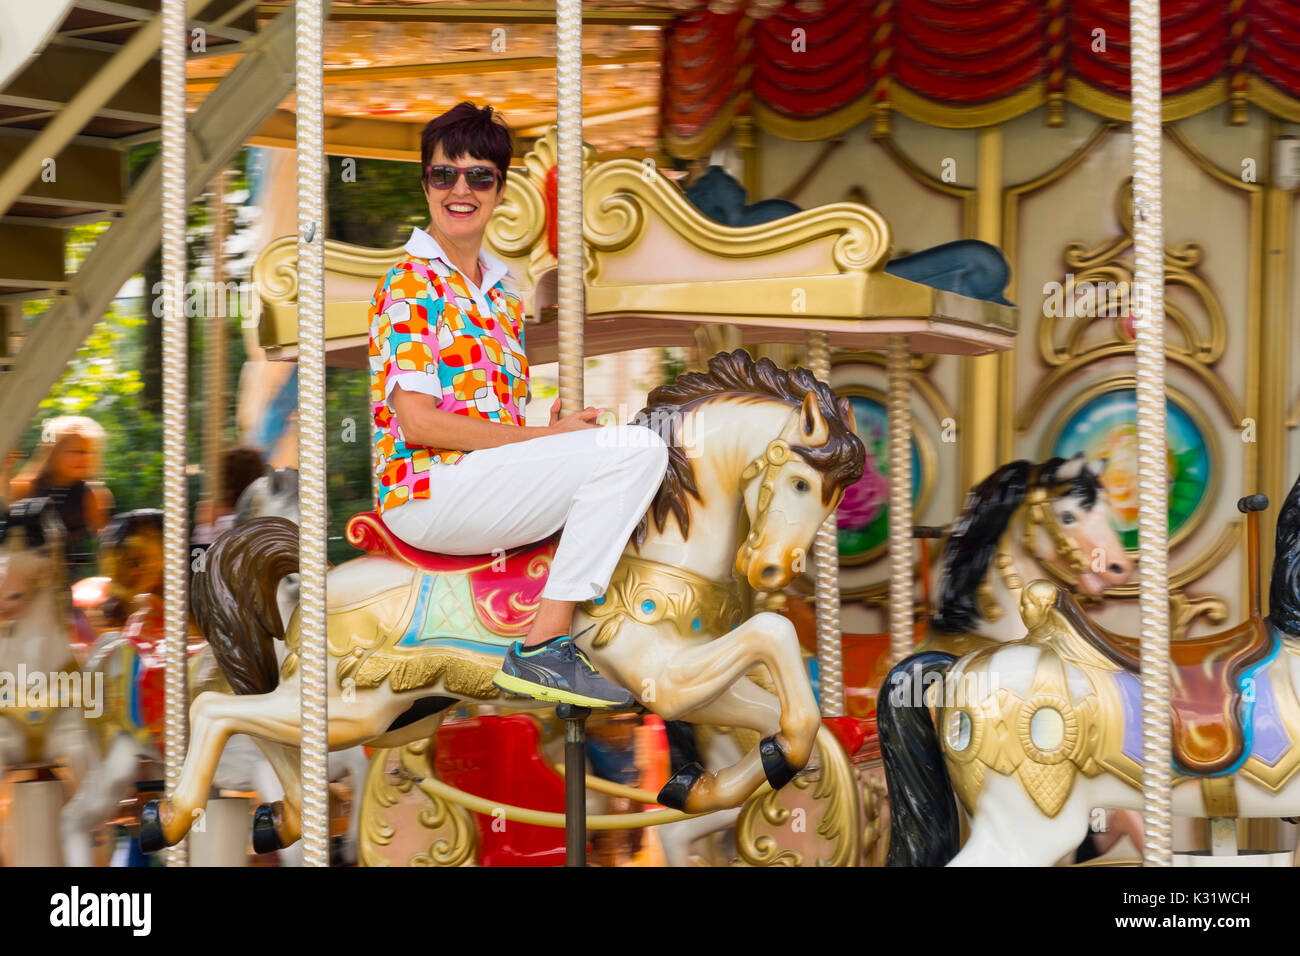 Woman riding traditional gallopers on a carousel ride, Santander. Cantabria Spain, Europe - Stock Image